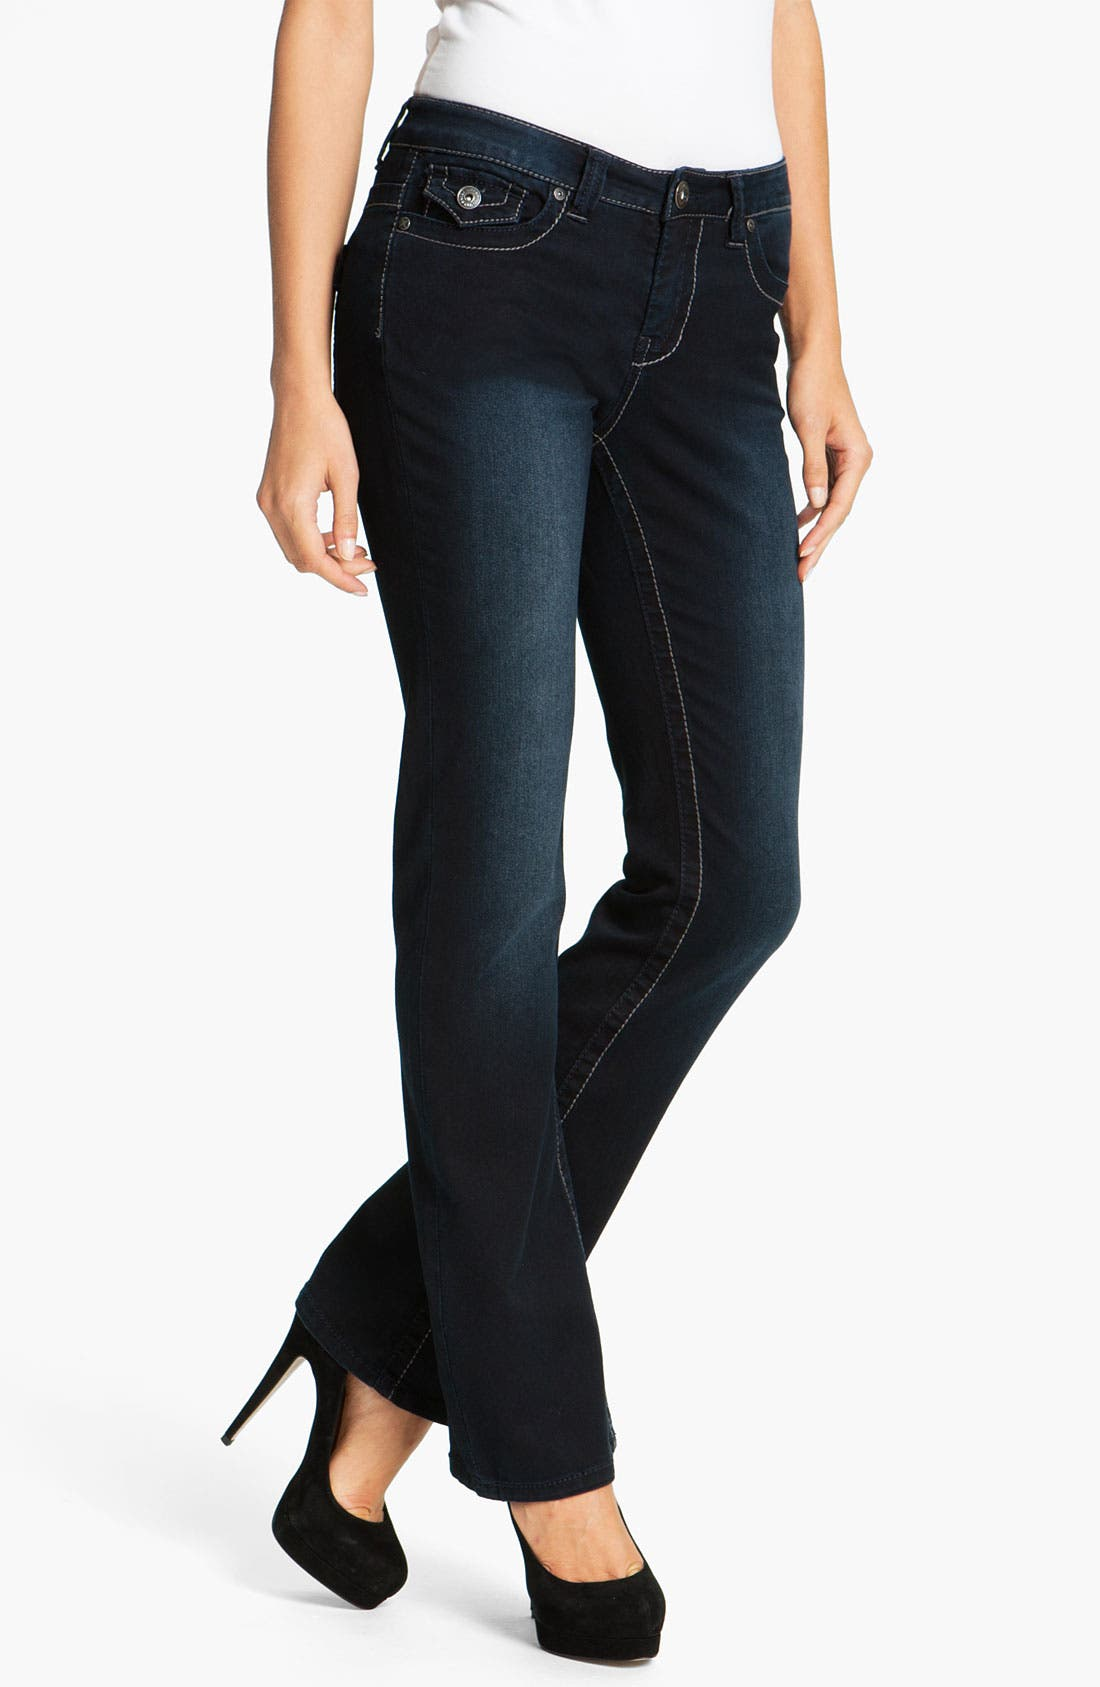 Alternate Image 2  - Liverpool Jeans Company 'Rita' Bootcut Stretch Jeans (Petite) (Online Exclusive)